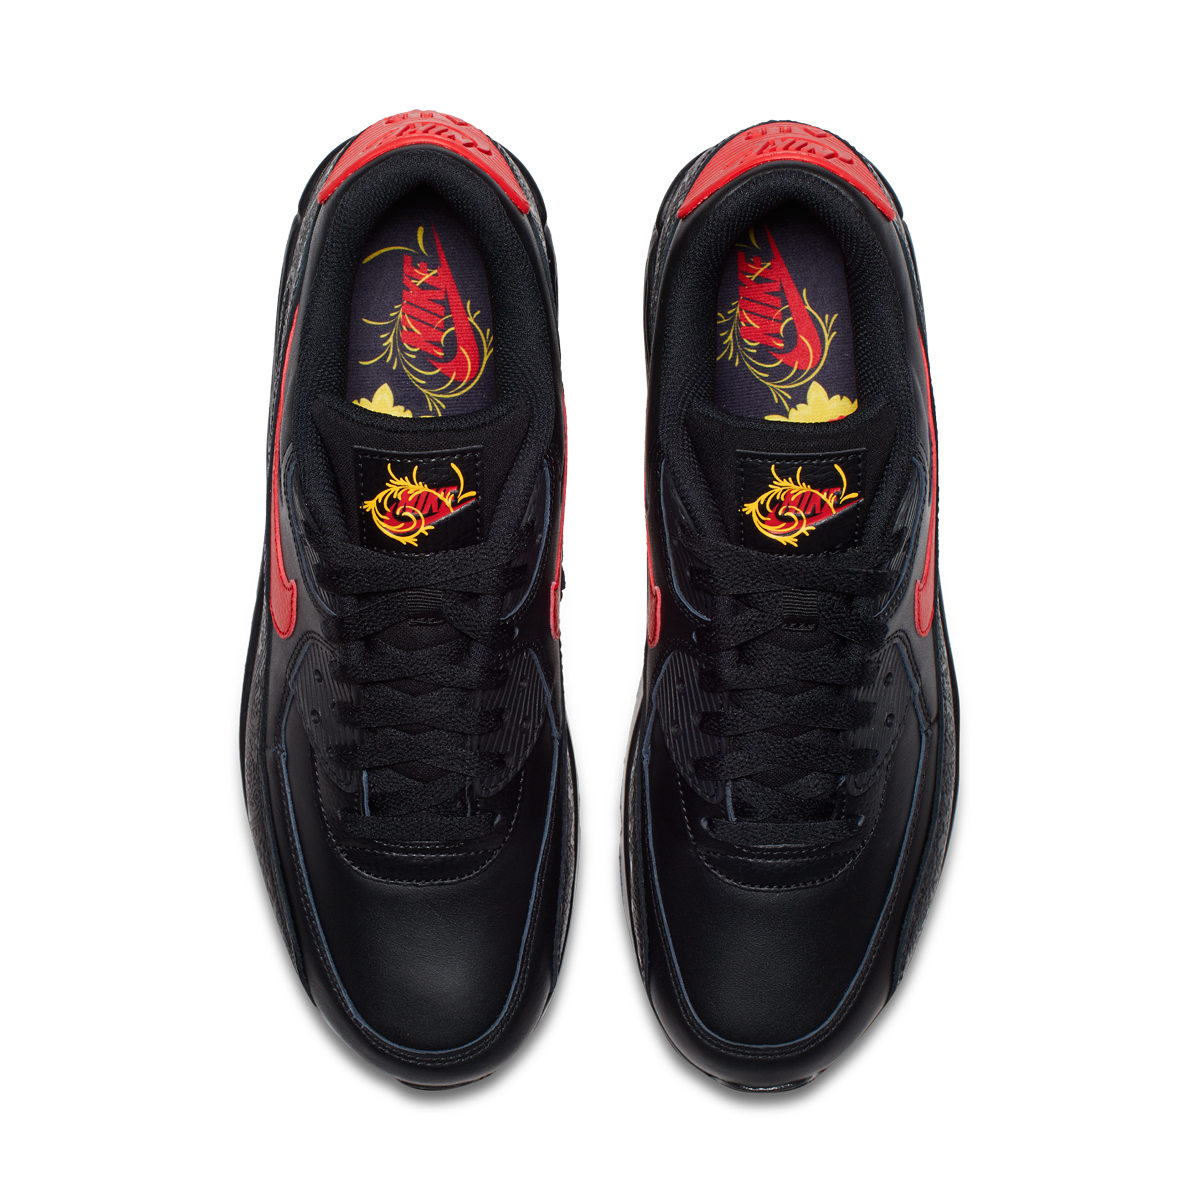 """f85ded79c0 Nike Air Max 90 """"Chinese New Year"""" Color: Black/University Red Style Code:  AO3152-001. Release Date: February 2018"""